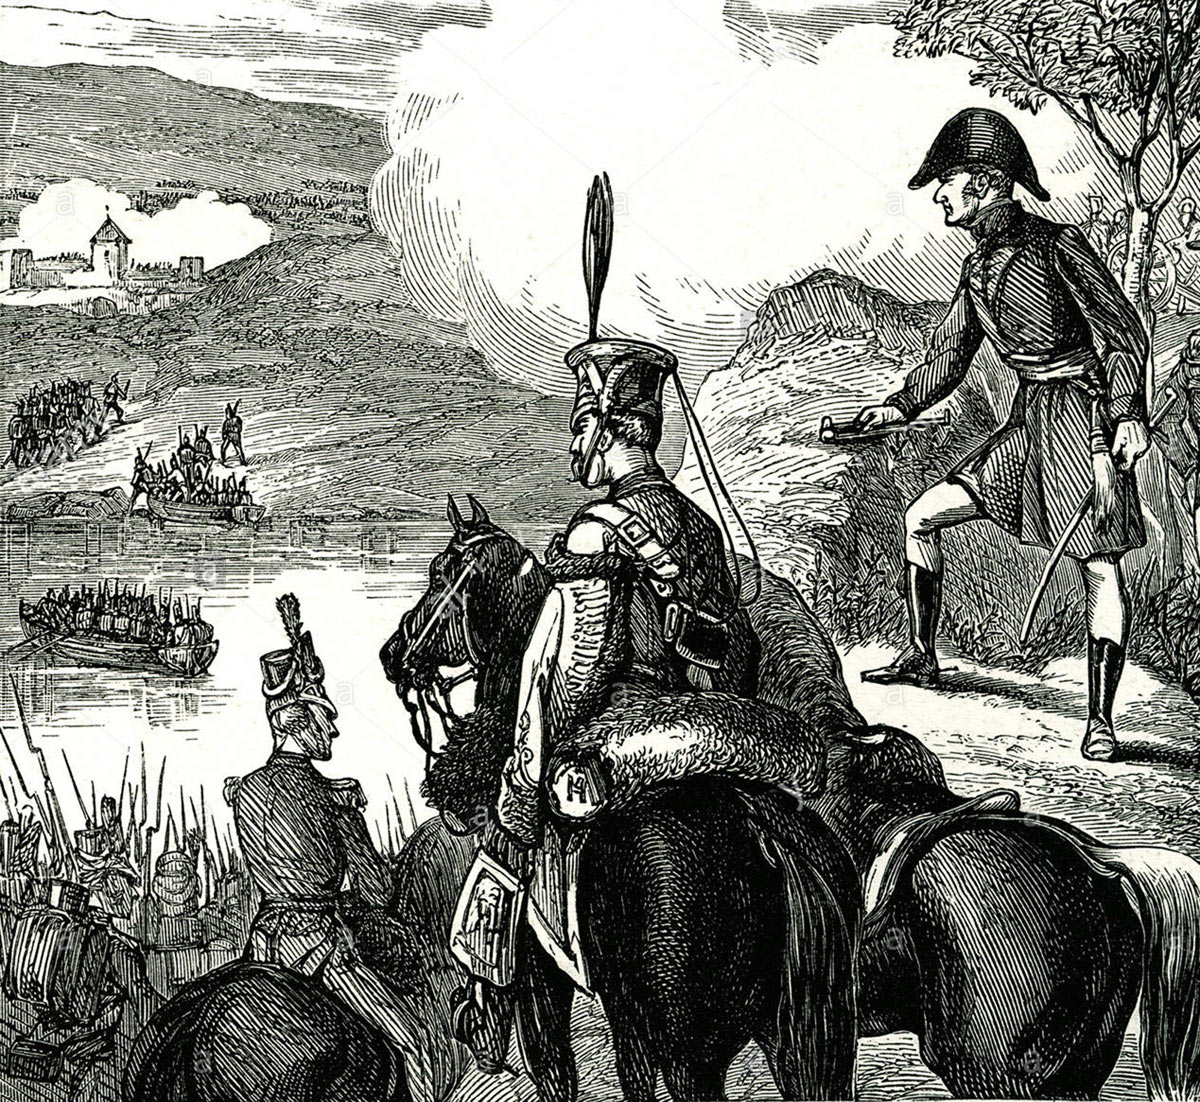 Sir Arthur Wellesley watching his troops crossing the river at the Battle of the Passage of the Douro on 16th May 1809 in the Peninsular War